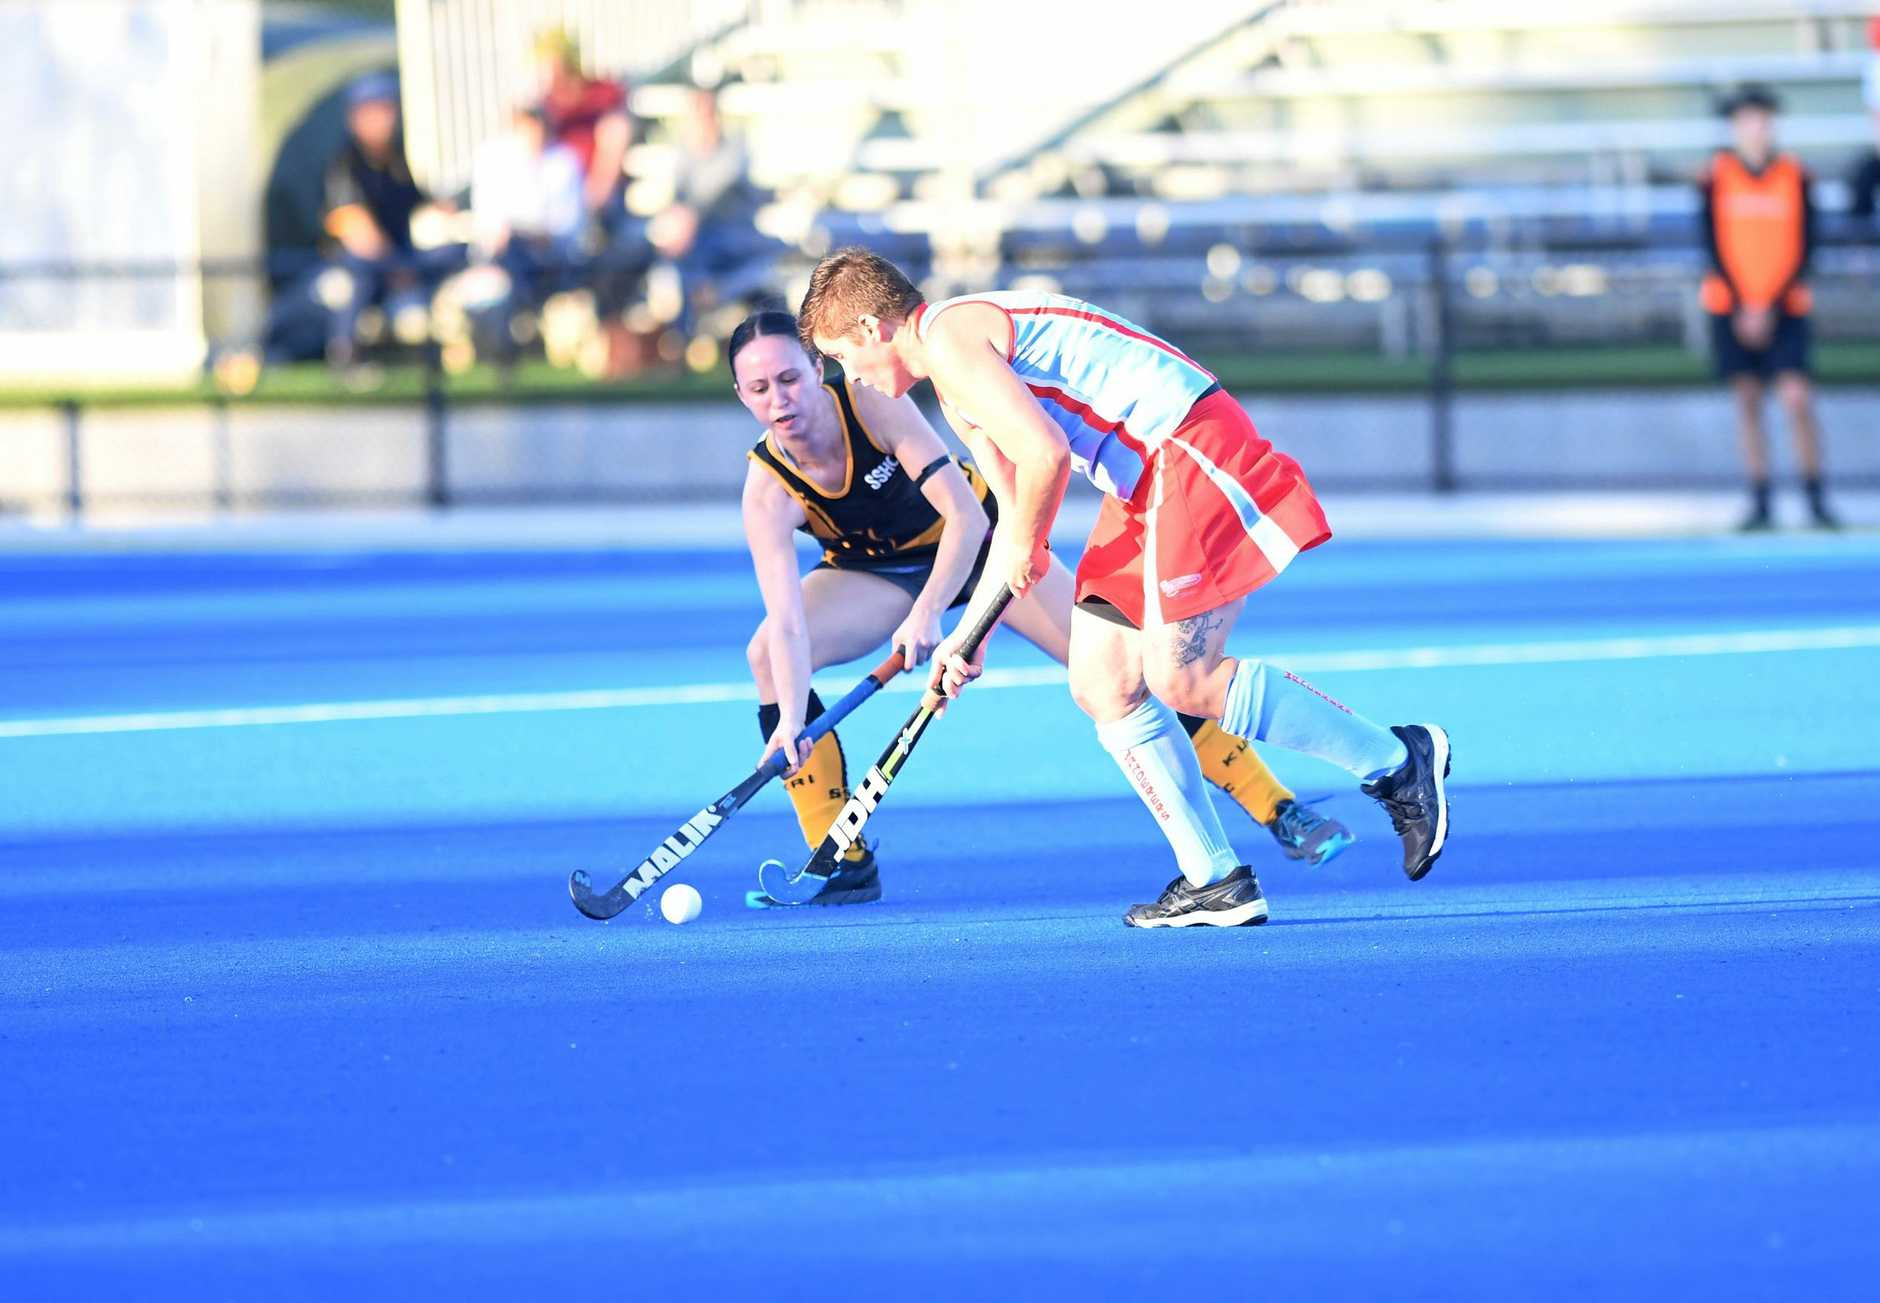 Hockey, Souths Lillian Elder and Wanderers T.Chirio